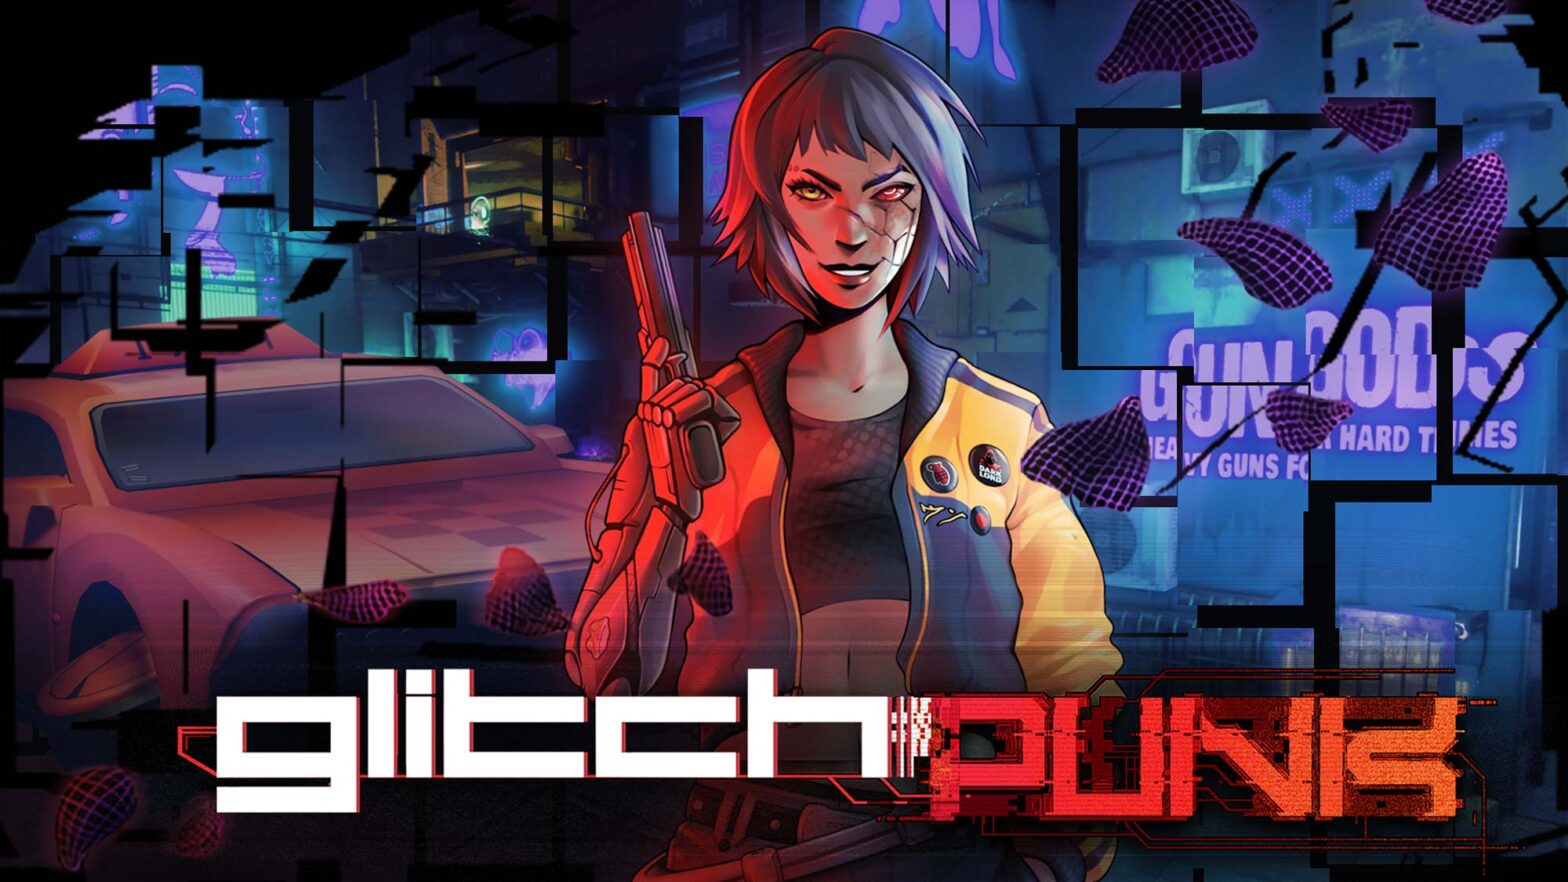 Glitchpunk Top-down Action Video Game